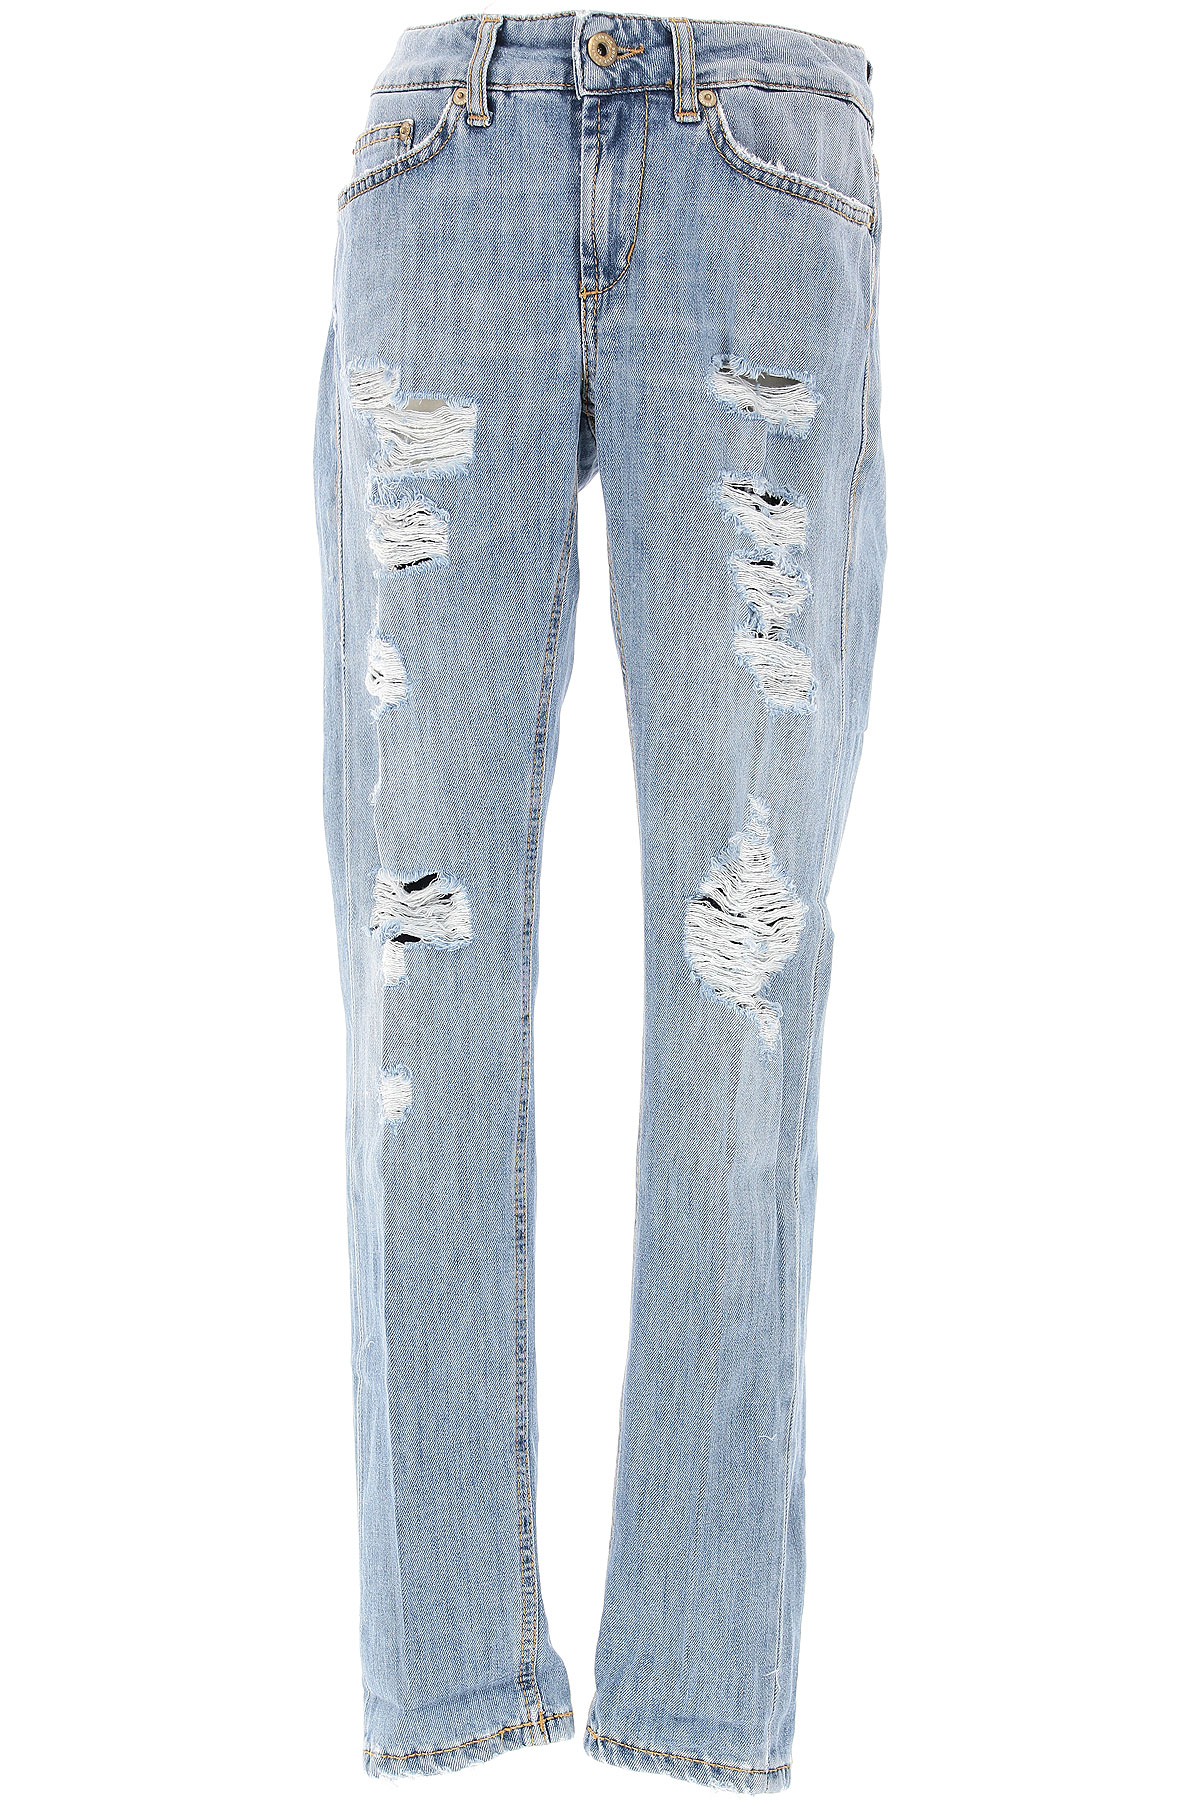 Dondup Jeans On Sale, Denim Blue, Cotton, 2017, 25 26 27 28 31